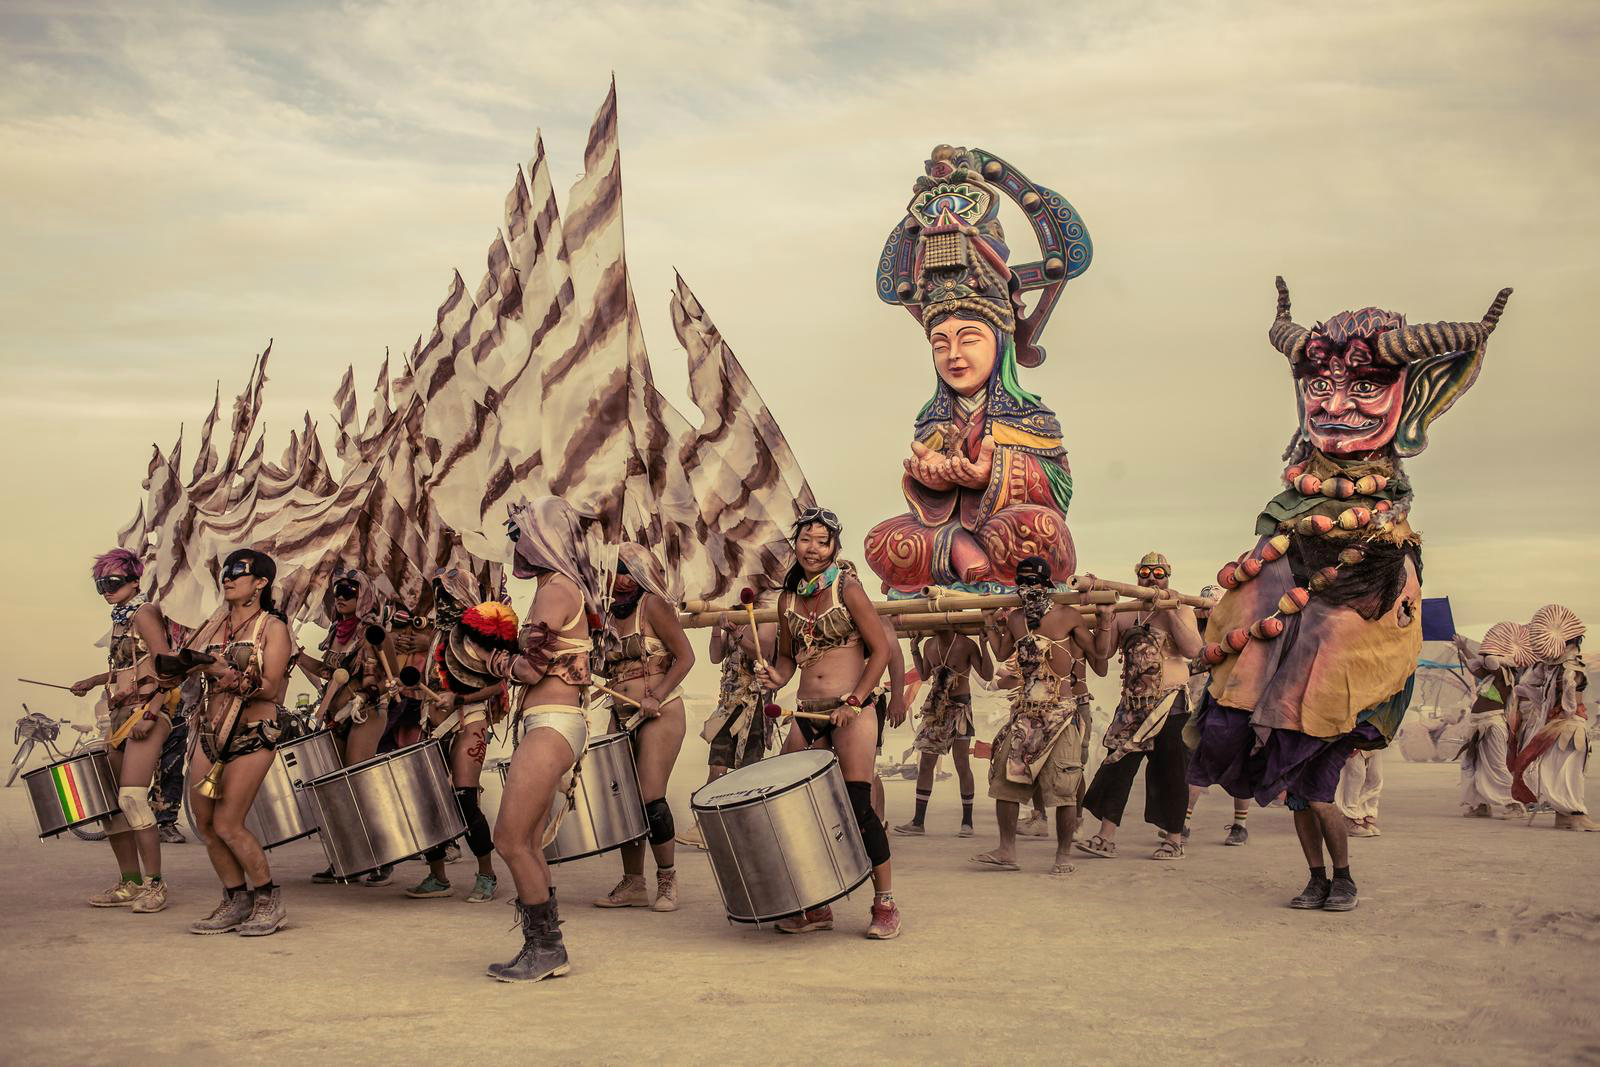 Evenement dans le desert de Black Rock City. Photo: Remi Jaouen